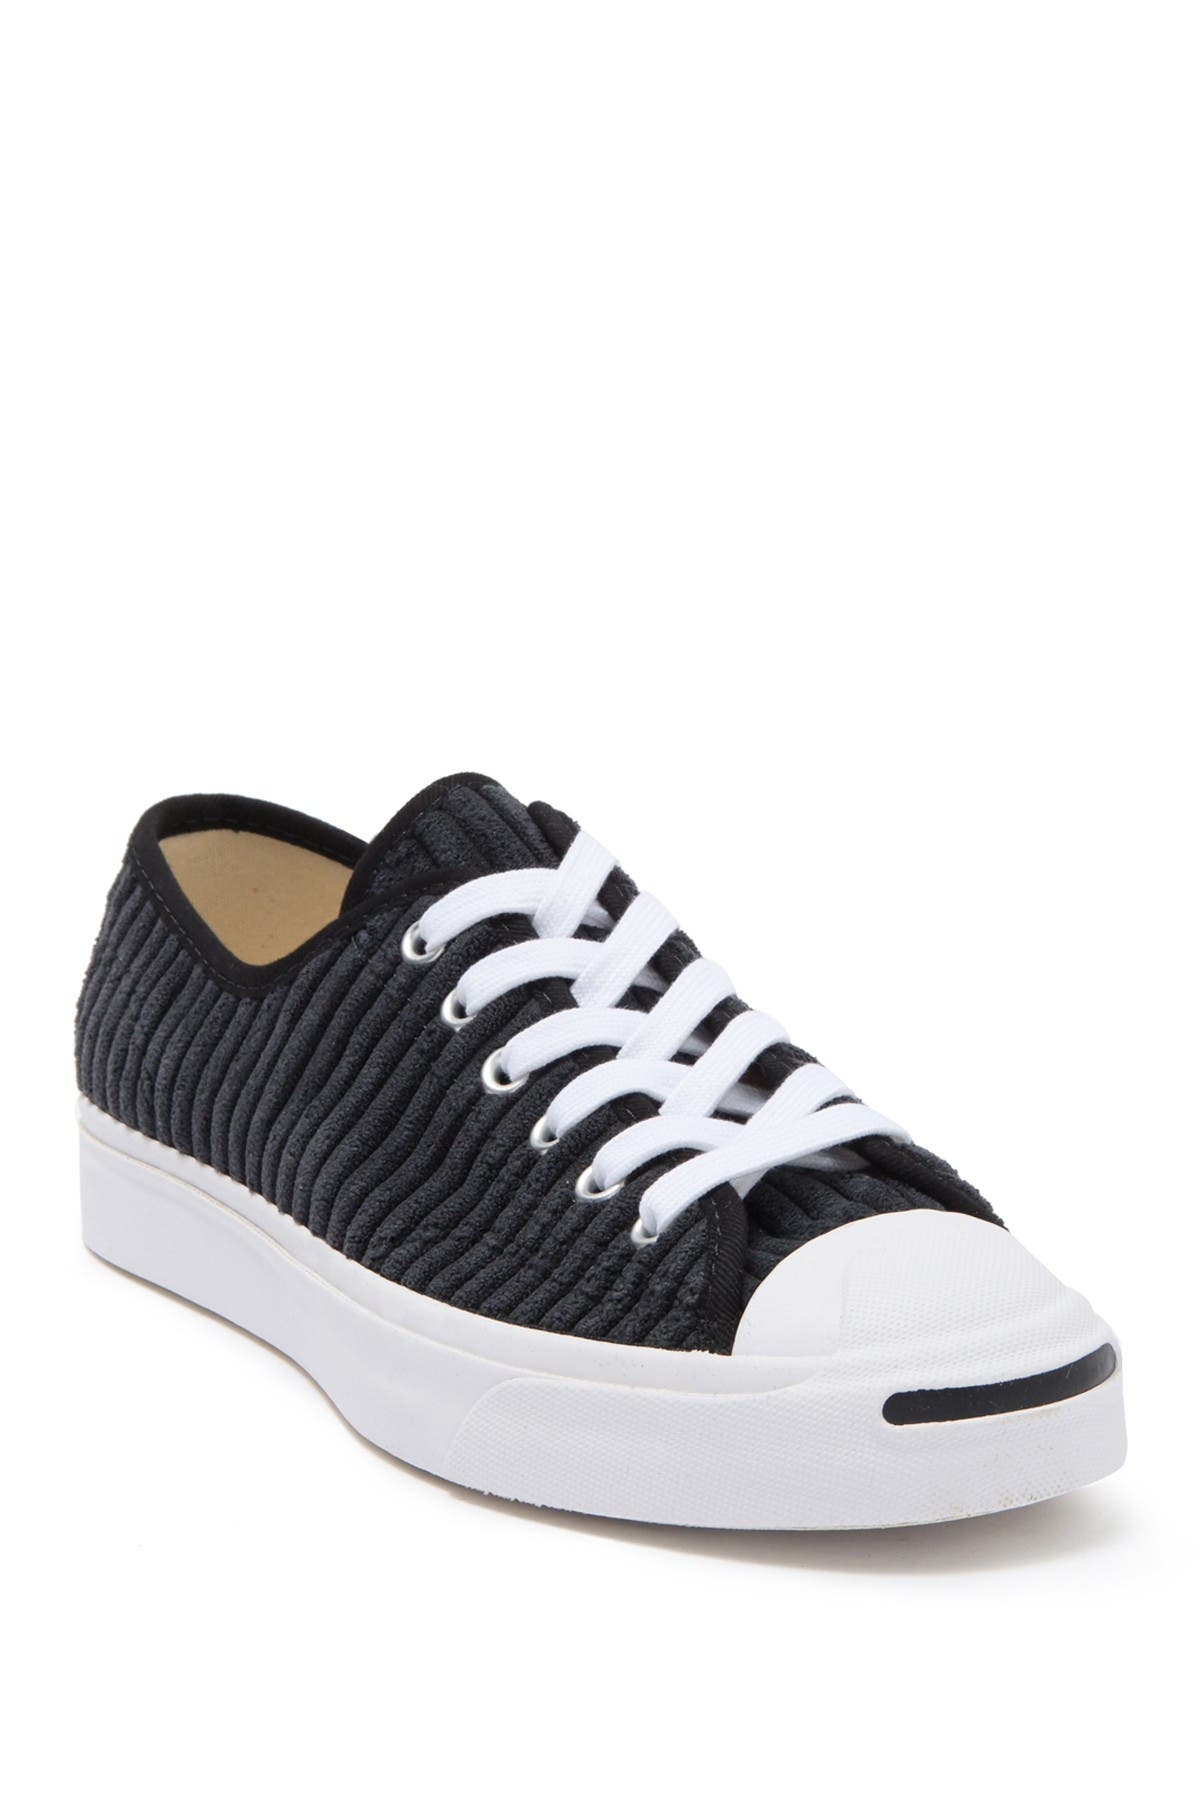 Jack Purcell Wide Wale Corduroy Low Top